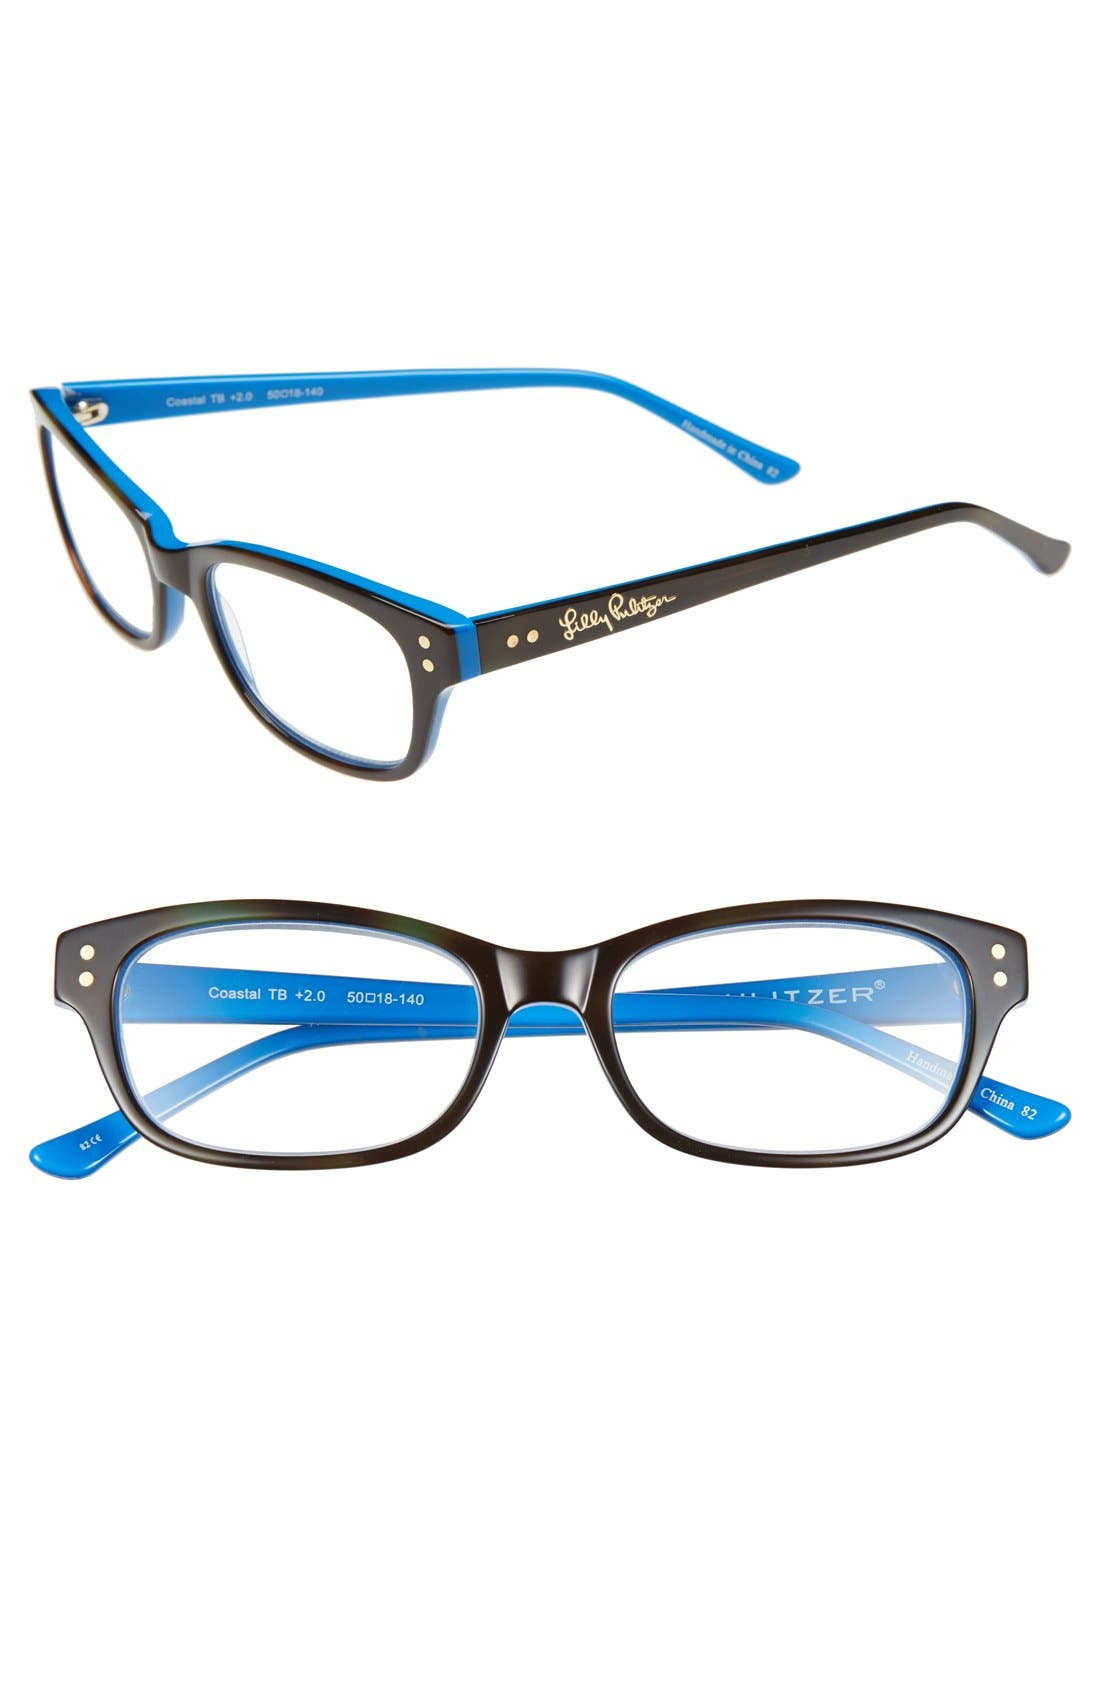 Alternate Image 1 Selected - Lilly Pulitzer® 'Coastal' 50mm Reading Glasses